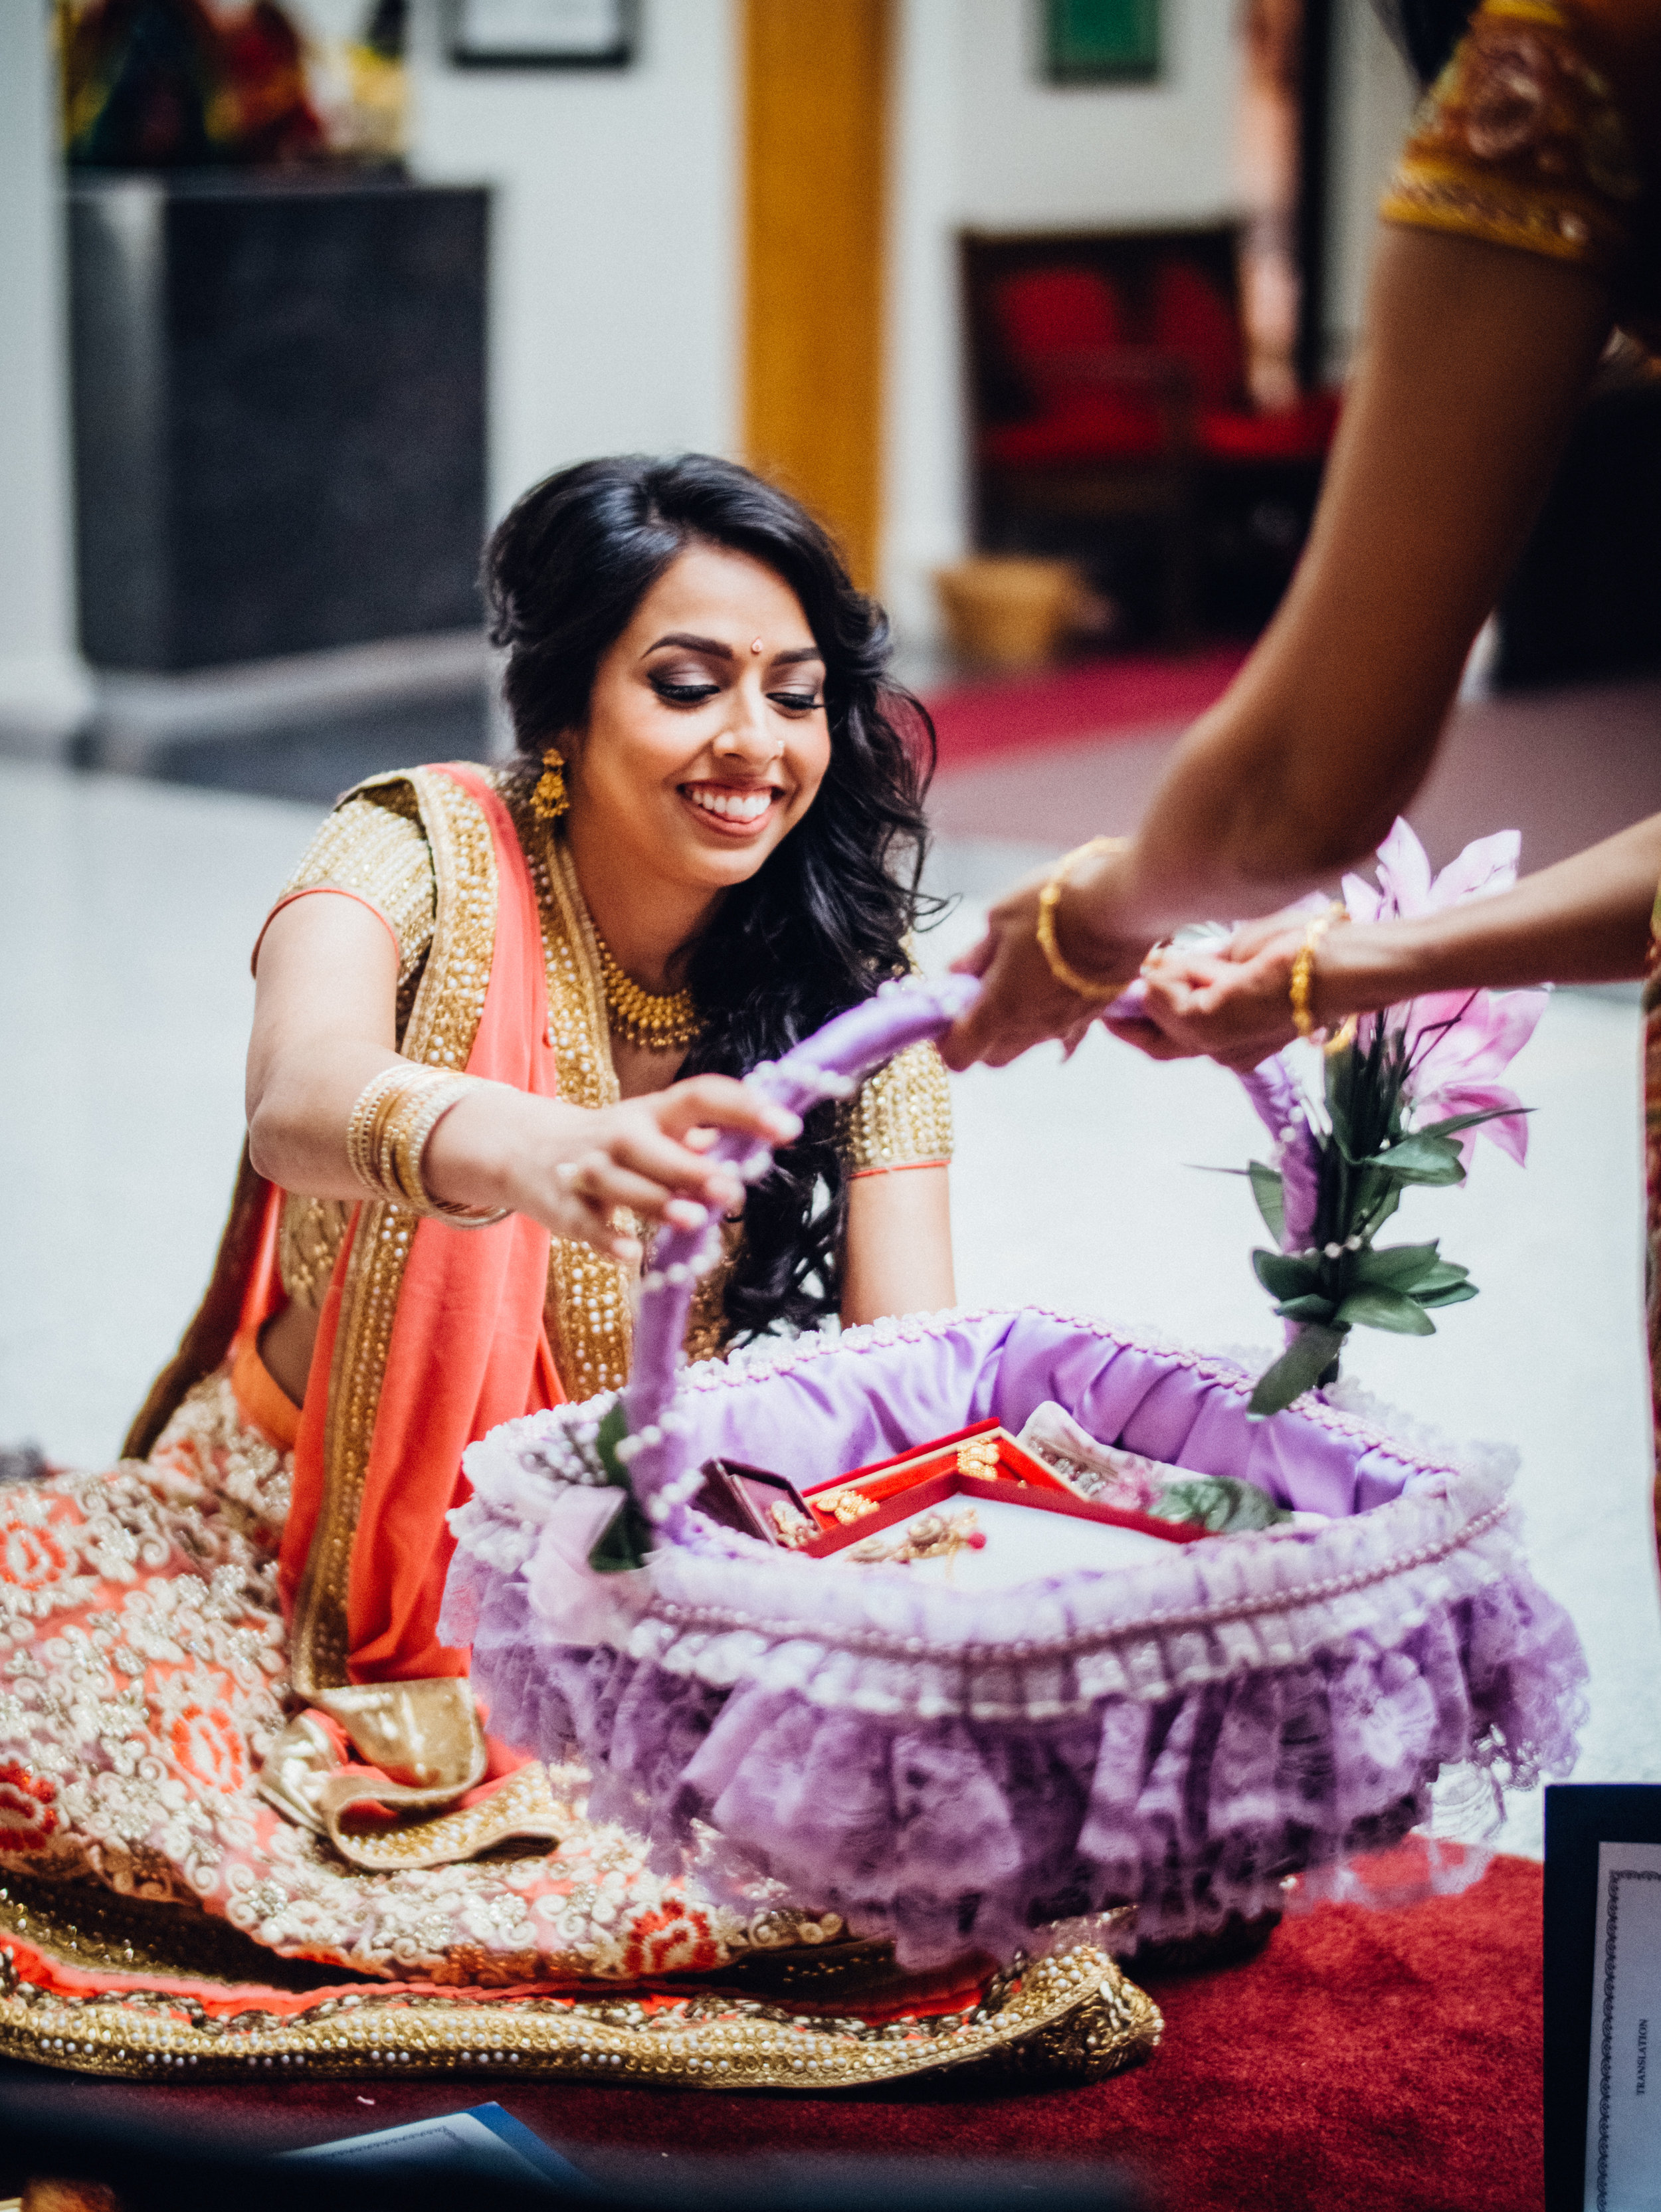 Lansing-Shadow-Shine-Pictures-Indian-Engagement-Ceremony-Award-Winning-Videography-Videographers-Videographer-Wedding-Photography-Photographers-Photography